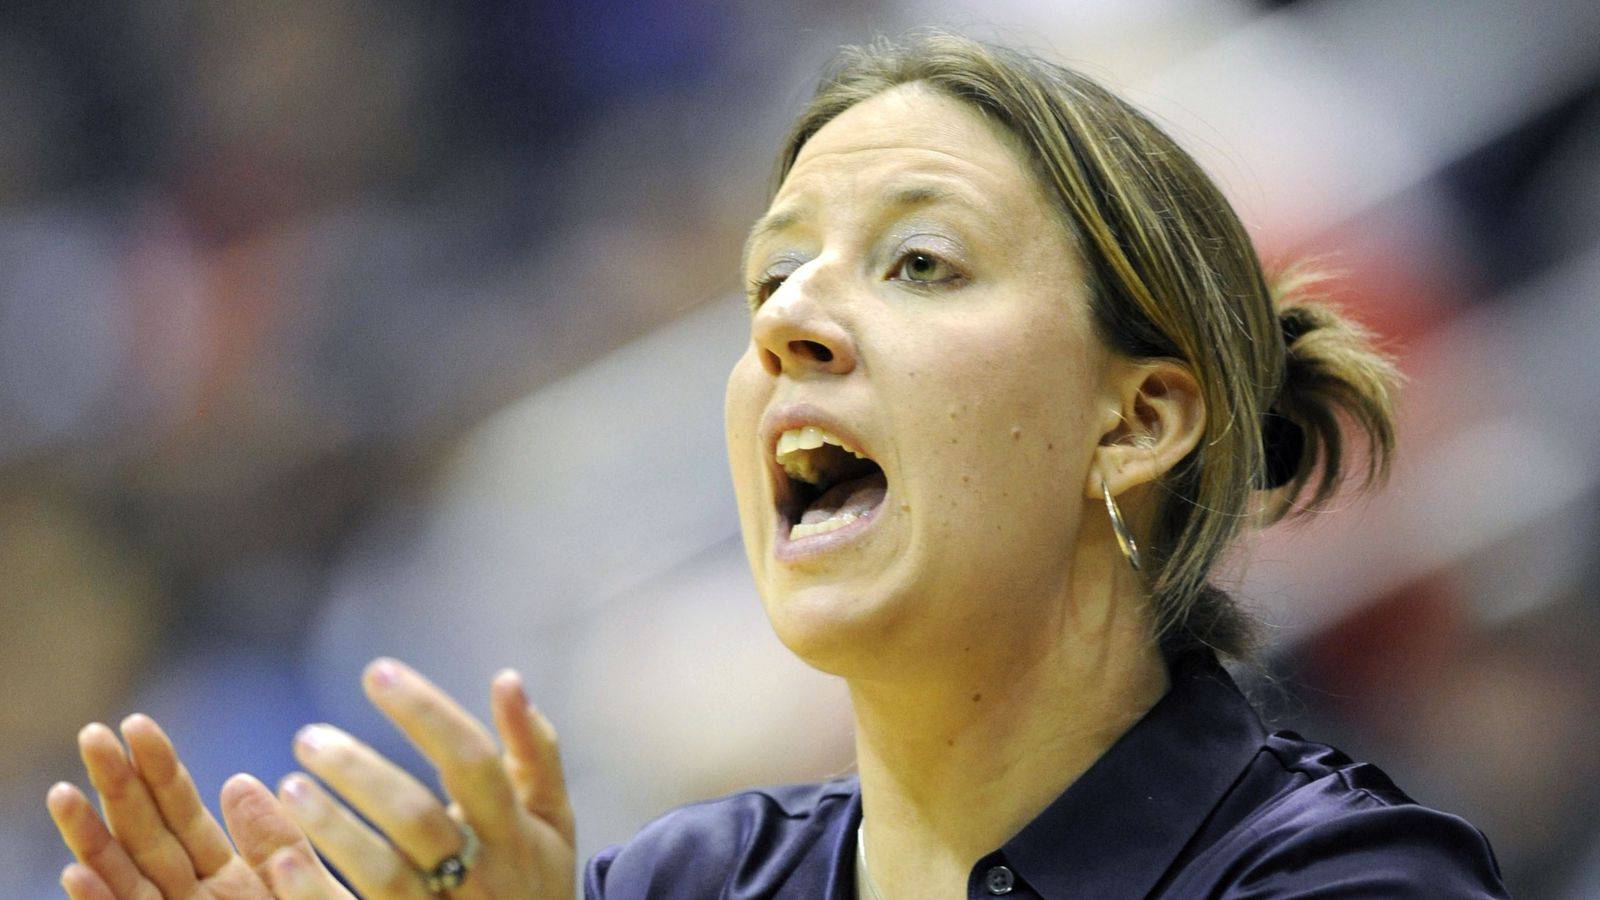 Cal Women's Basketball: Lindsay Gottlieb Pac-12 Coach of Year, Players Win Honors - California ...